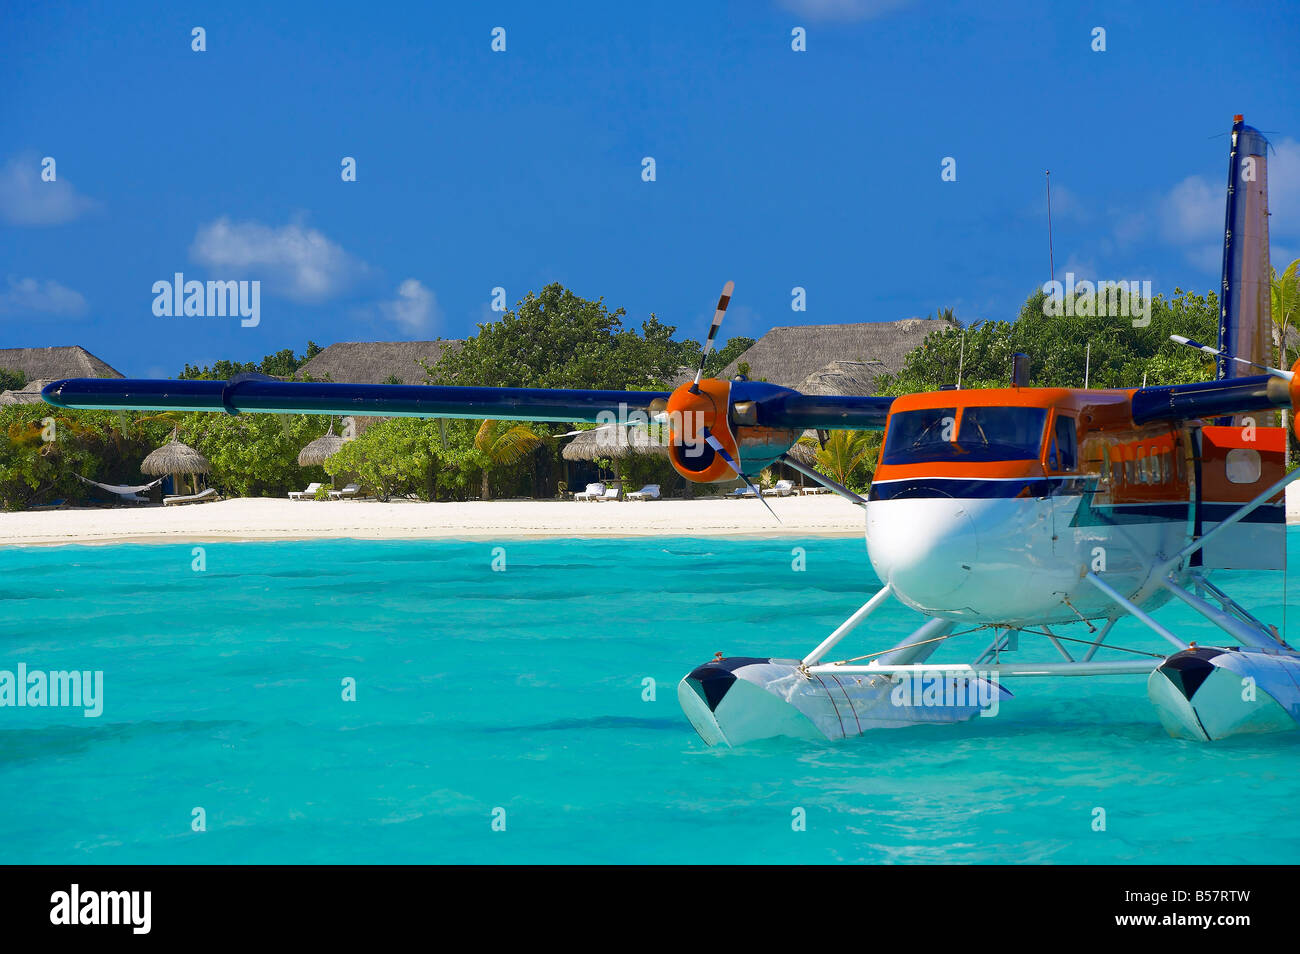 Maldivian Air Taxi parked in a resort in Maldives, Indian Ocean, Asia - Stock Image